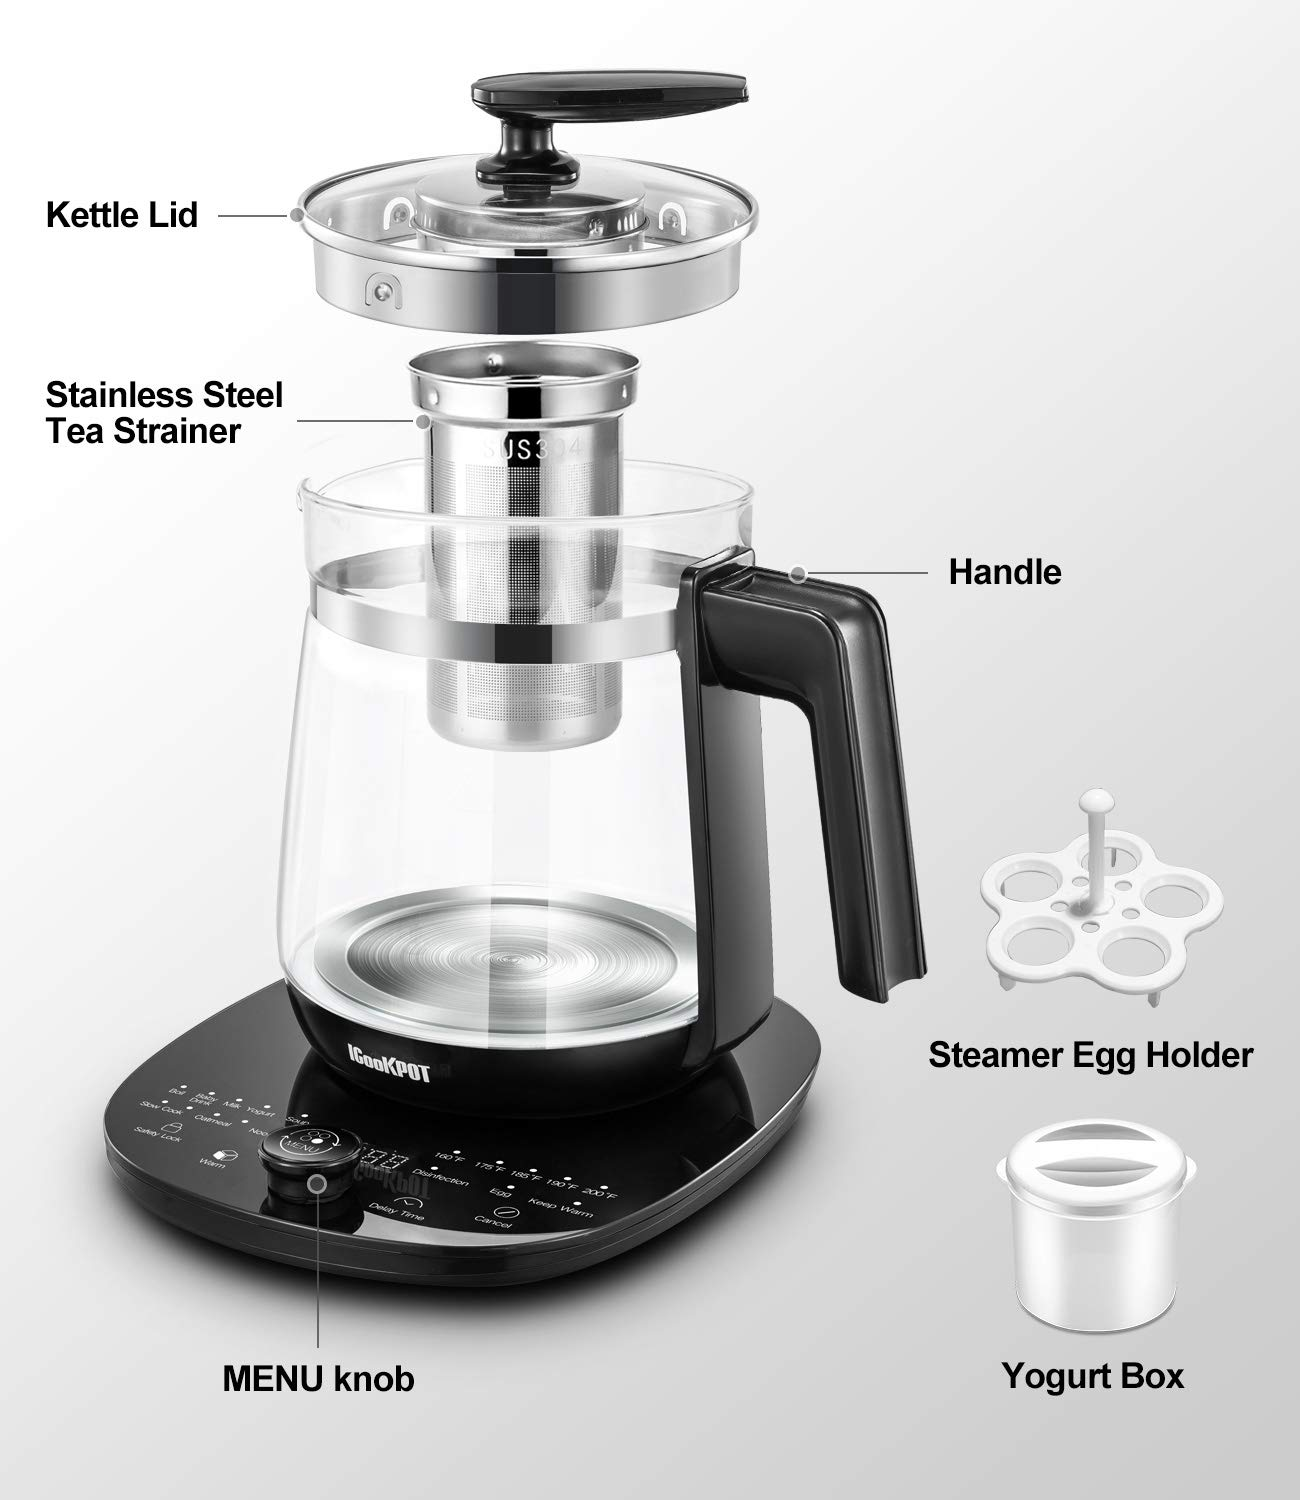 Egg Cooker and Yogurt Box Includes Filter Keep Warm Function Water Pot Kettle ICOOKPOT Multi-Use Electric Kettle Borosilicate Glass Tea Maker and Programmable Control Panel Base